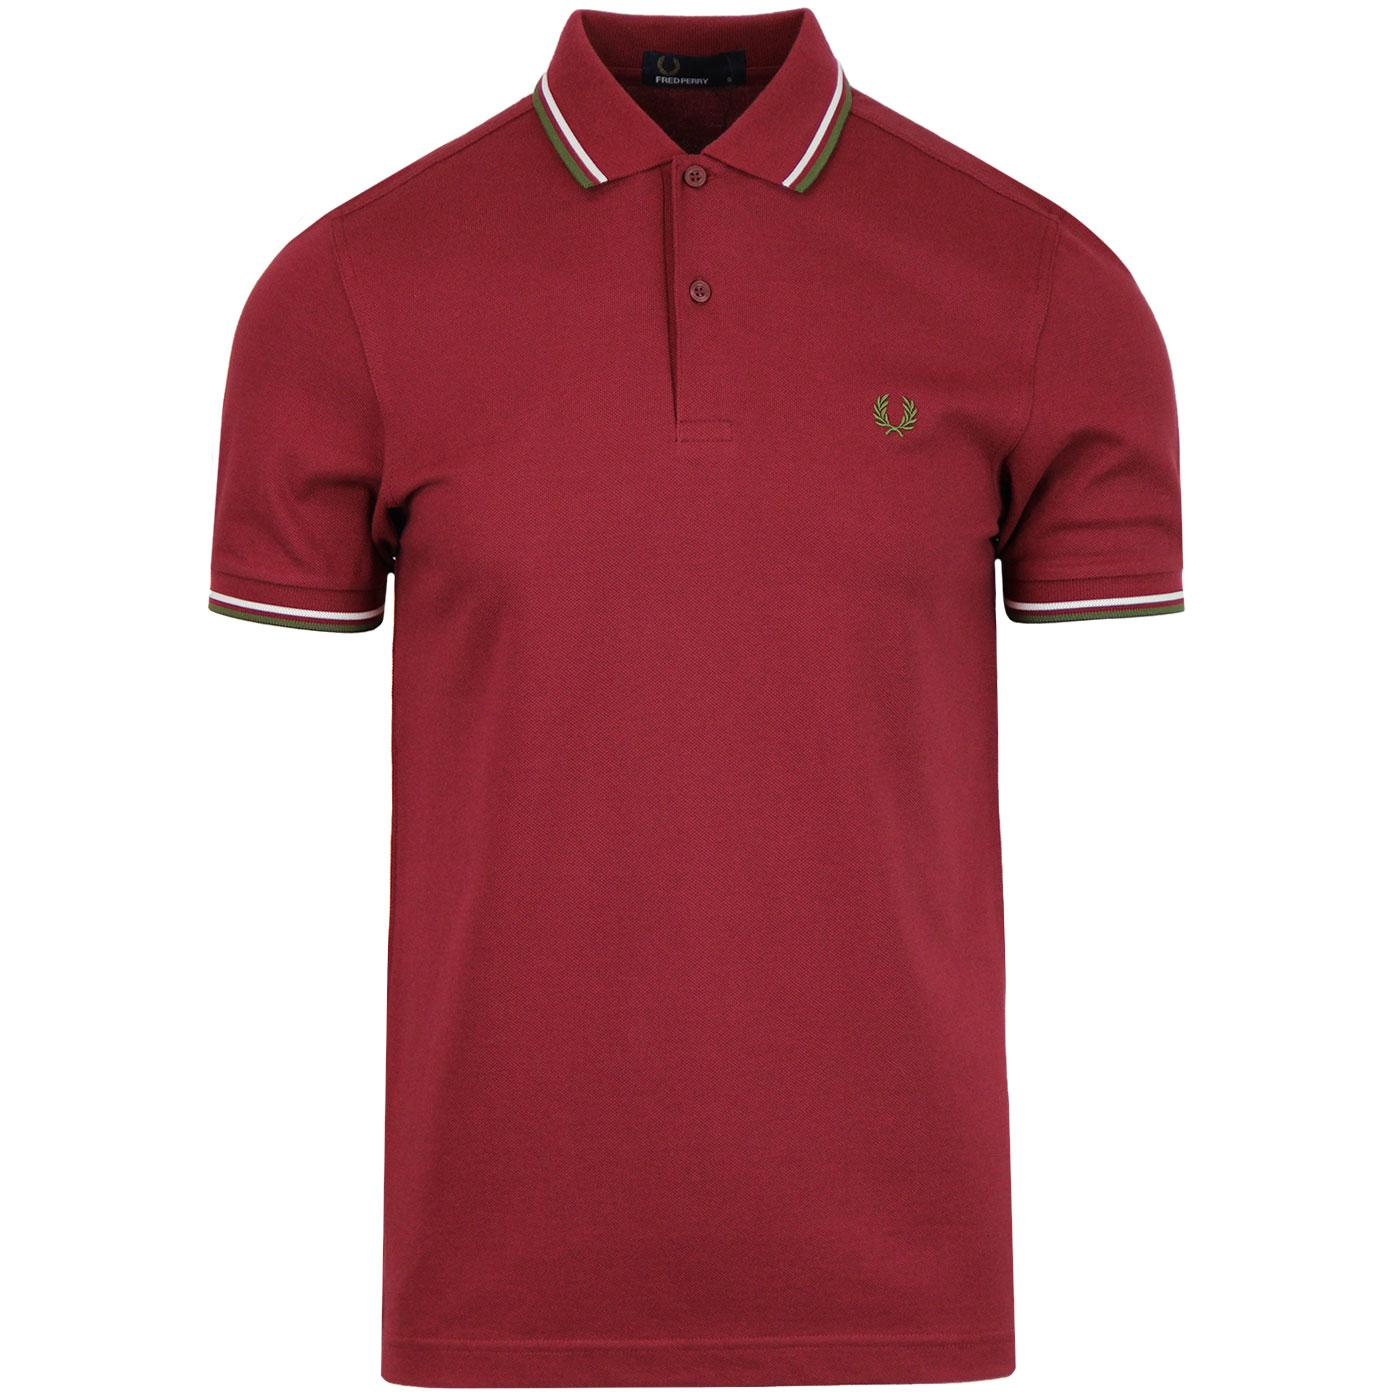 FRED PERRY M3600 Men's Twin Tipped Polo MAROON